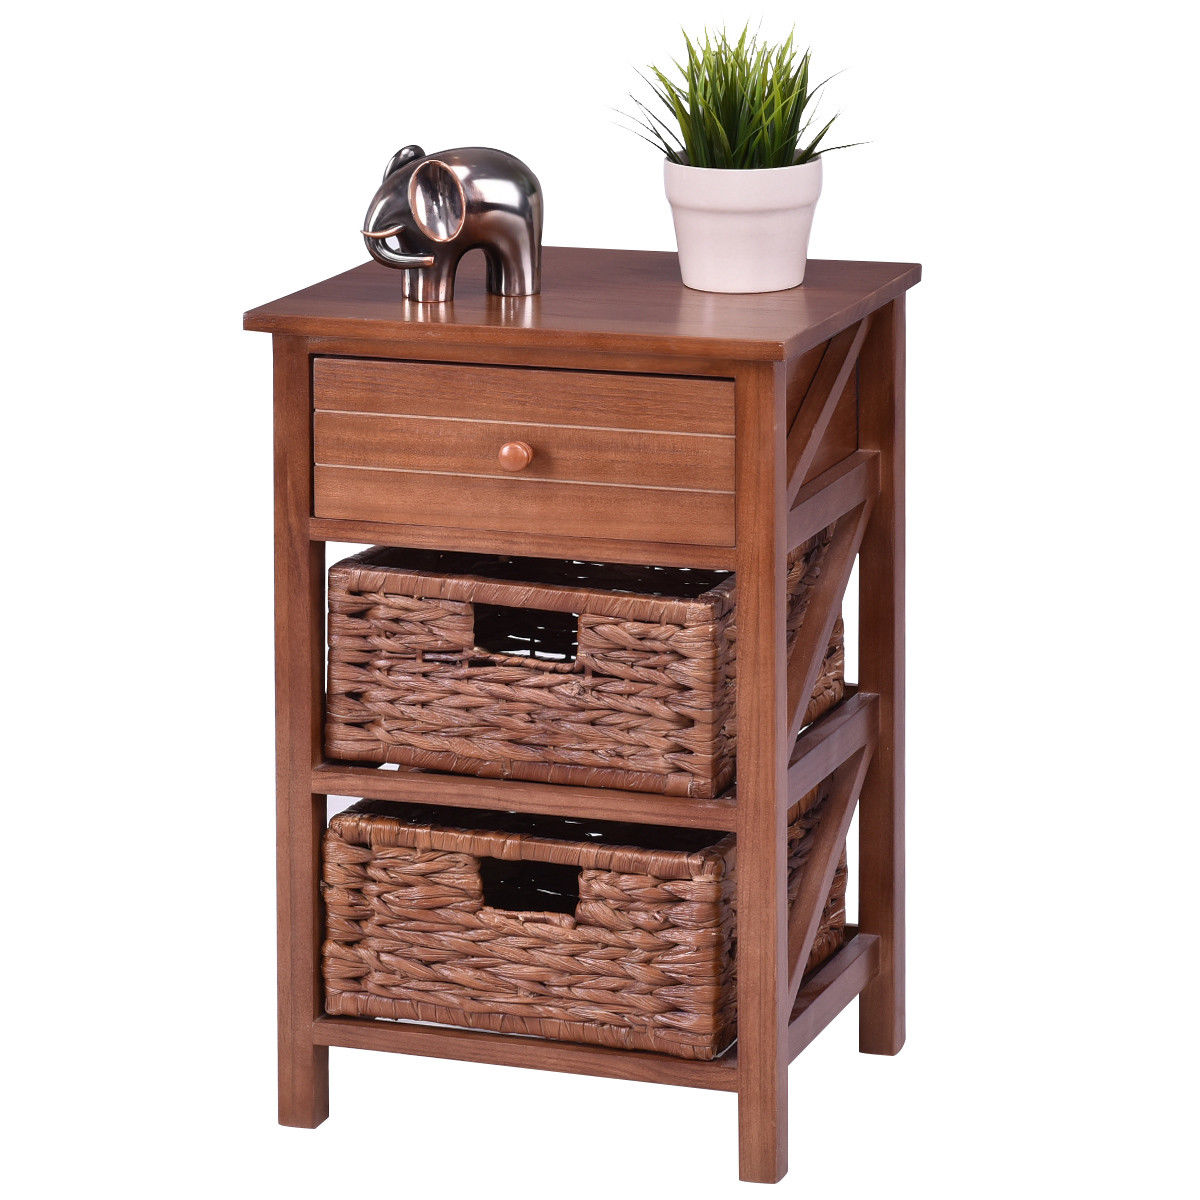 Costway 3 Tiers Wood Nightstand 1 Drawer 2 Basket Bedside Table End Table Organizer